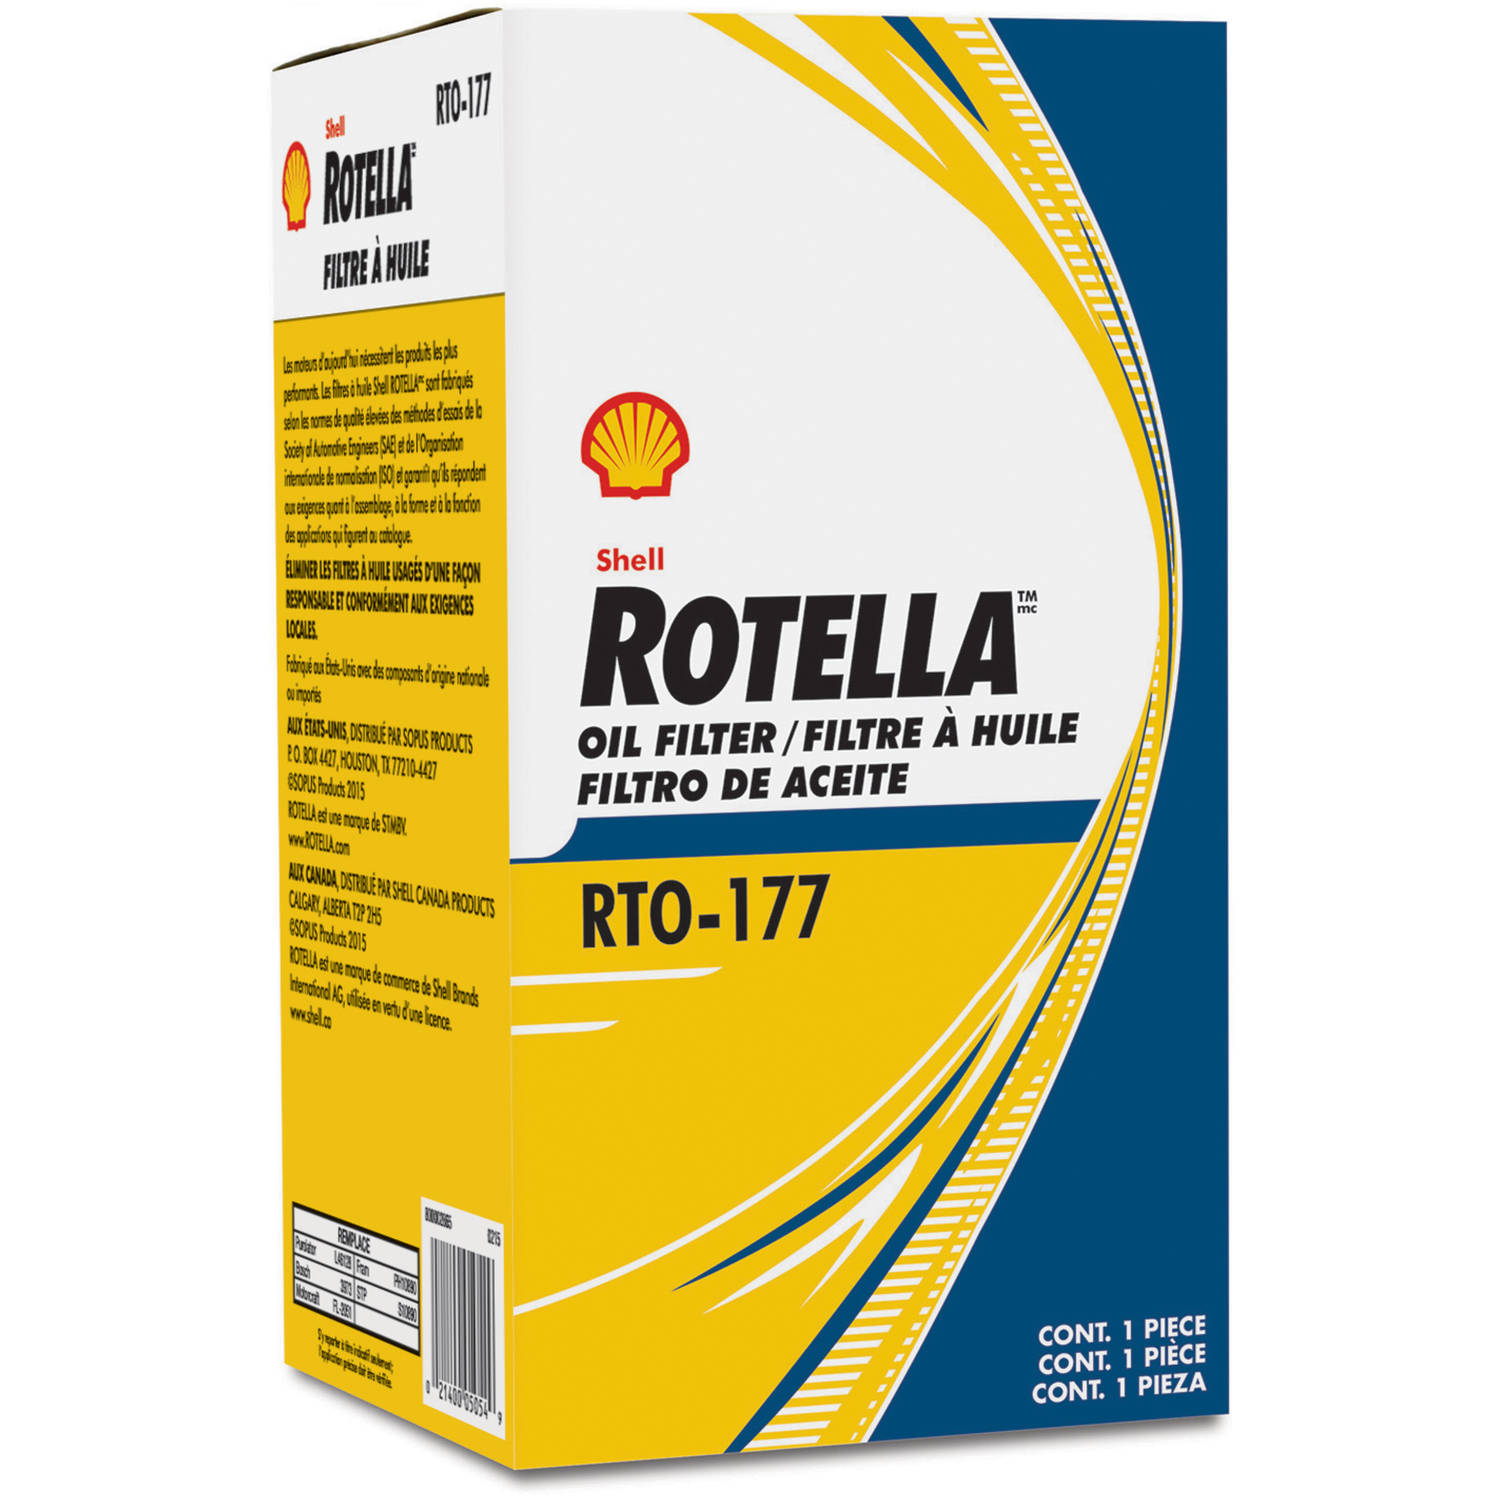 Rotella t6 plus rotella filter rto177 for Shell synthetic blend motor oil